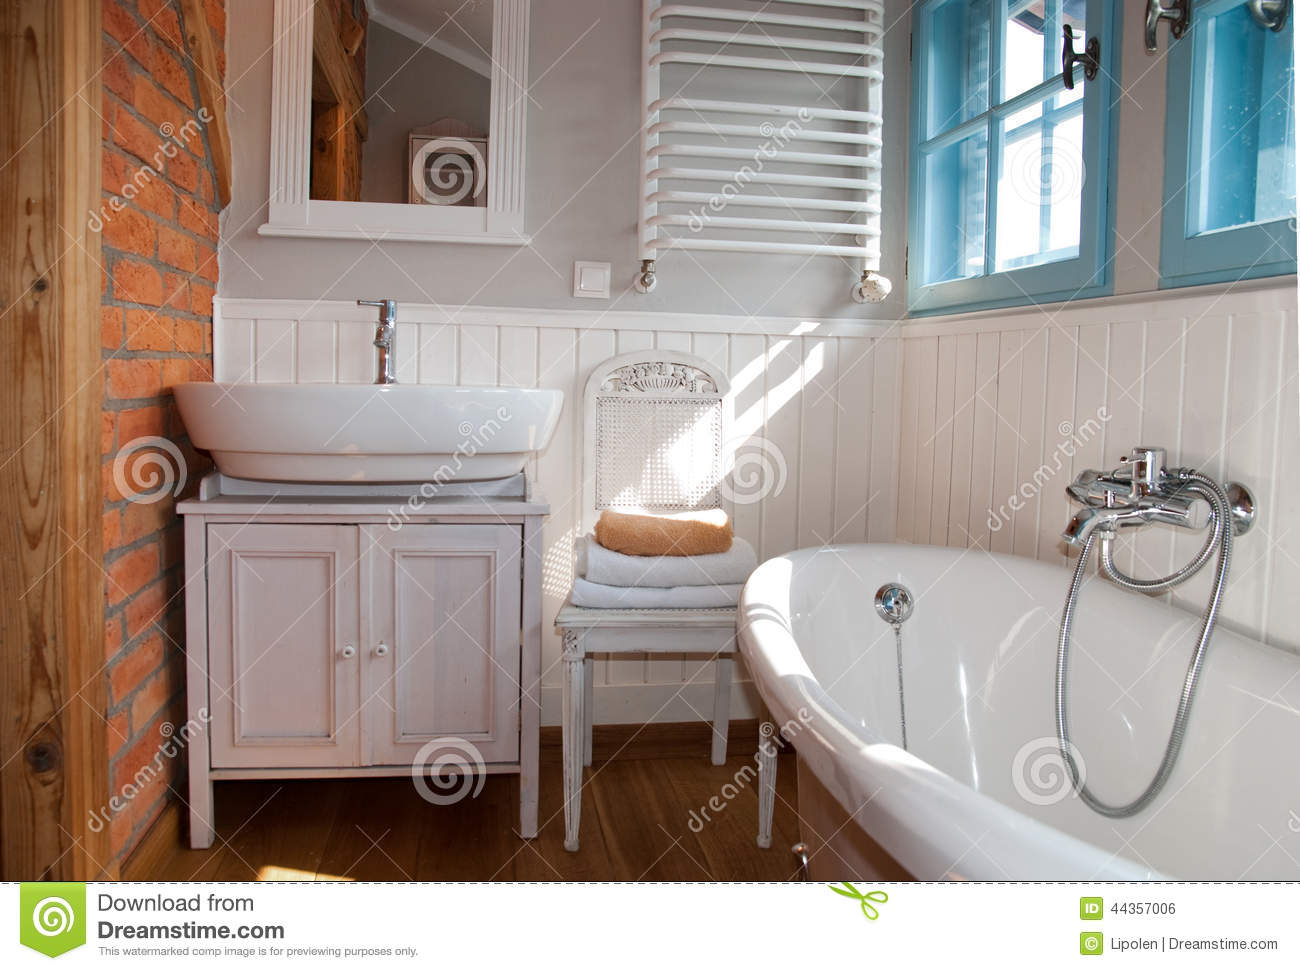 White Rustic Bathroom white grey rustic bathroom with window stock photo - image: 44357006